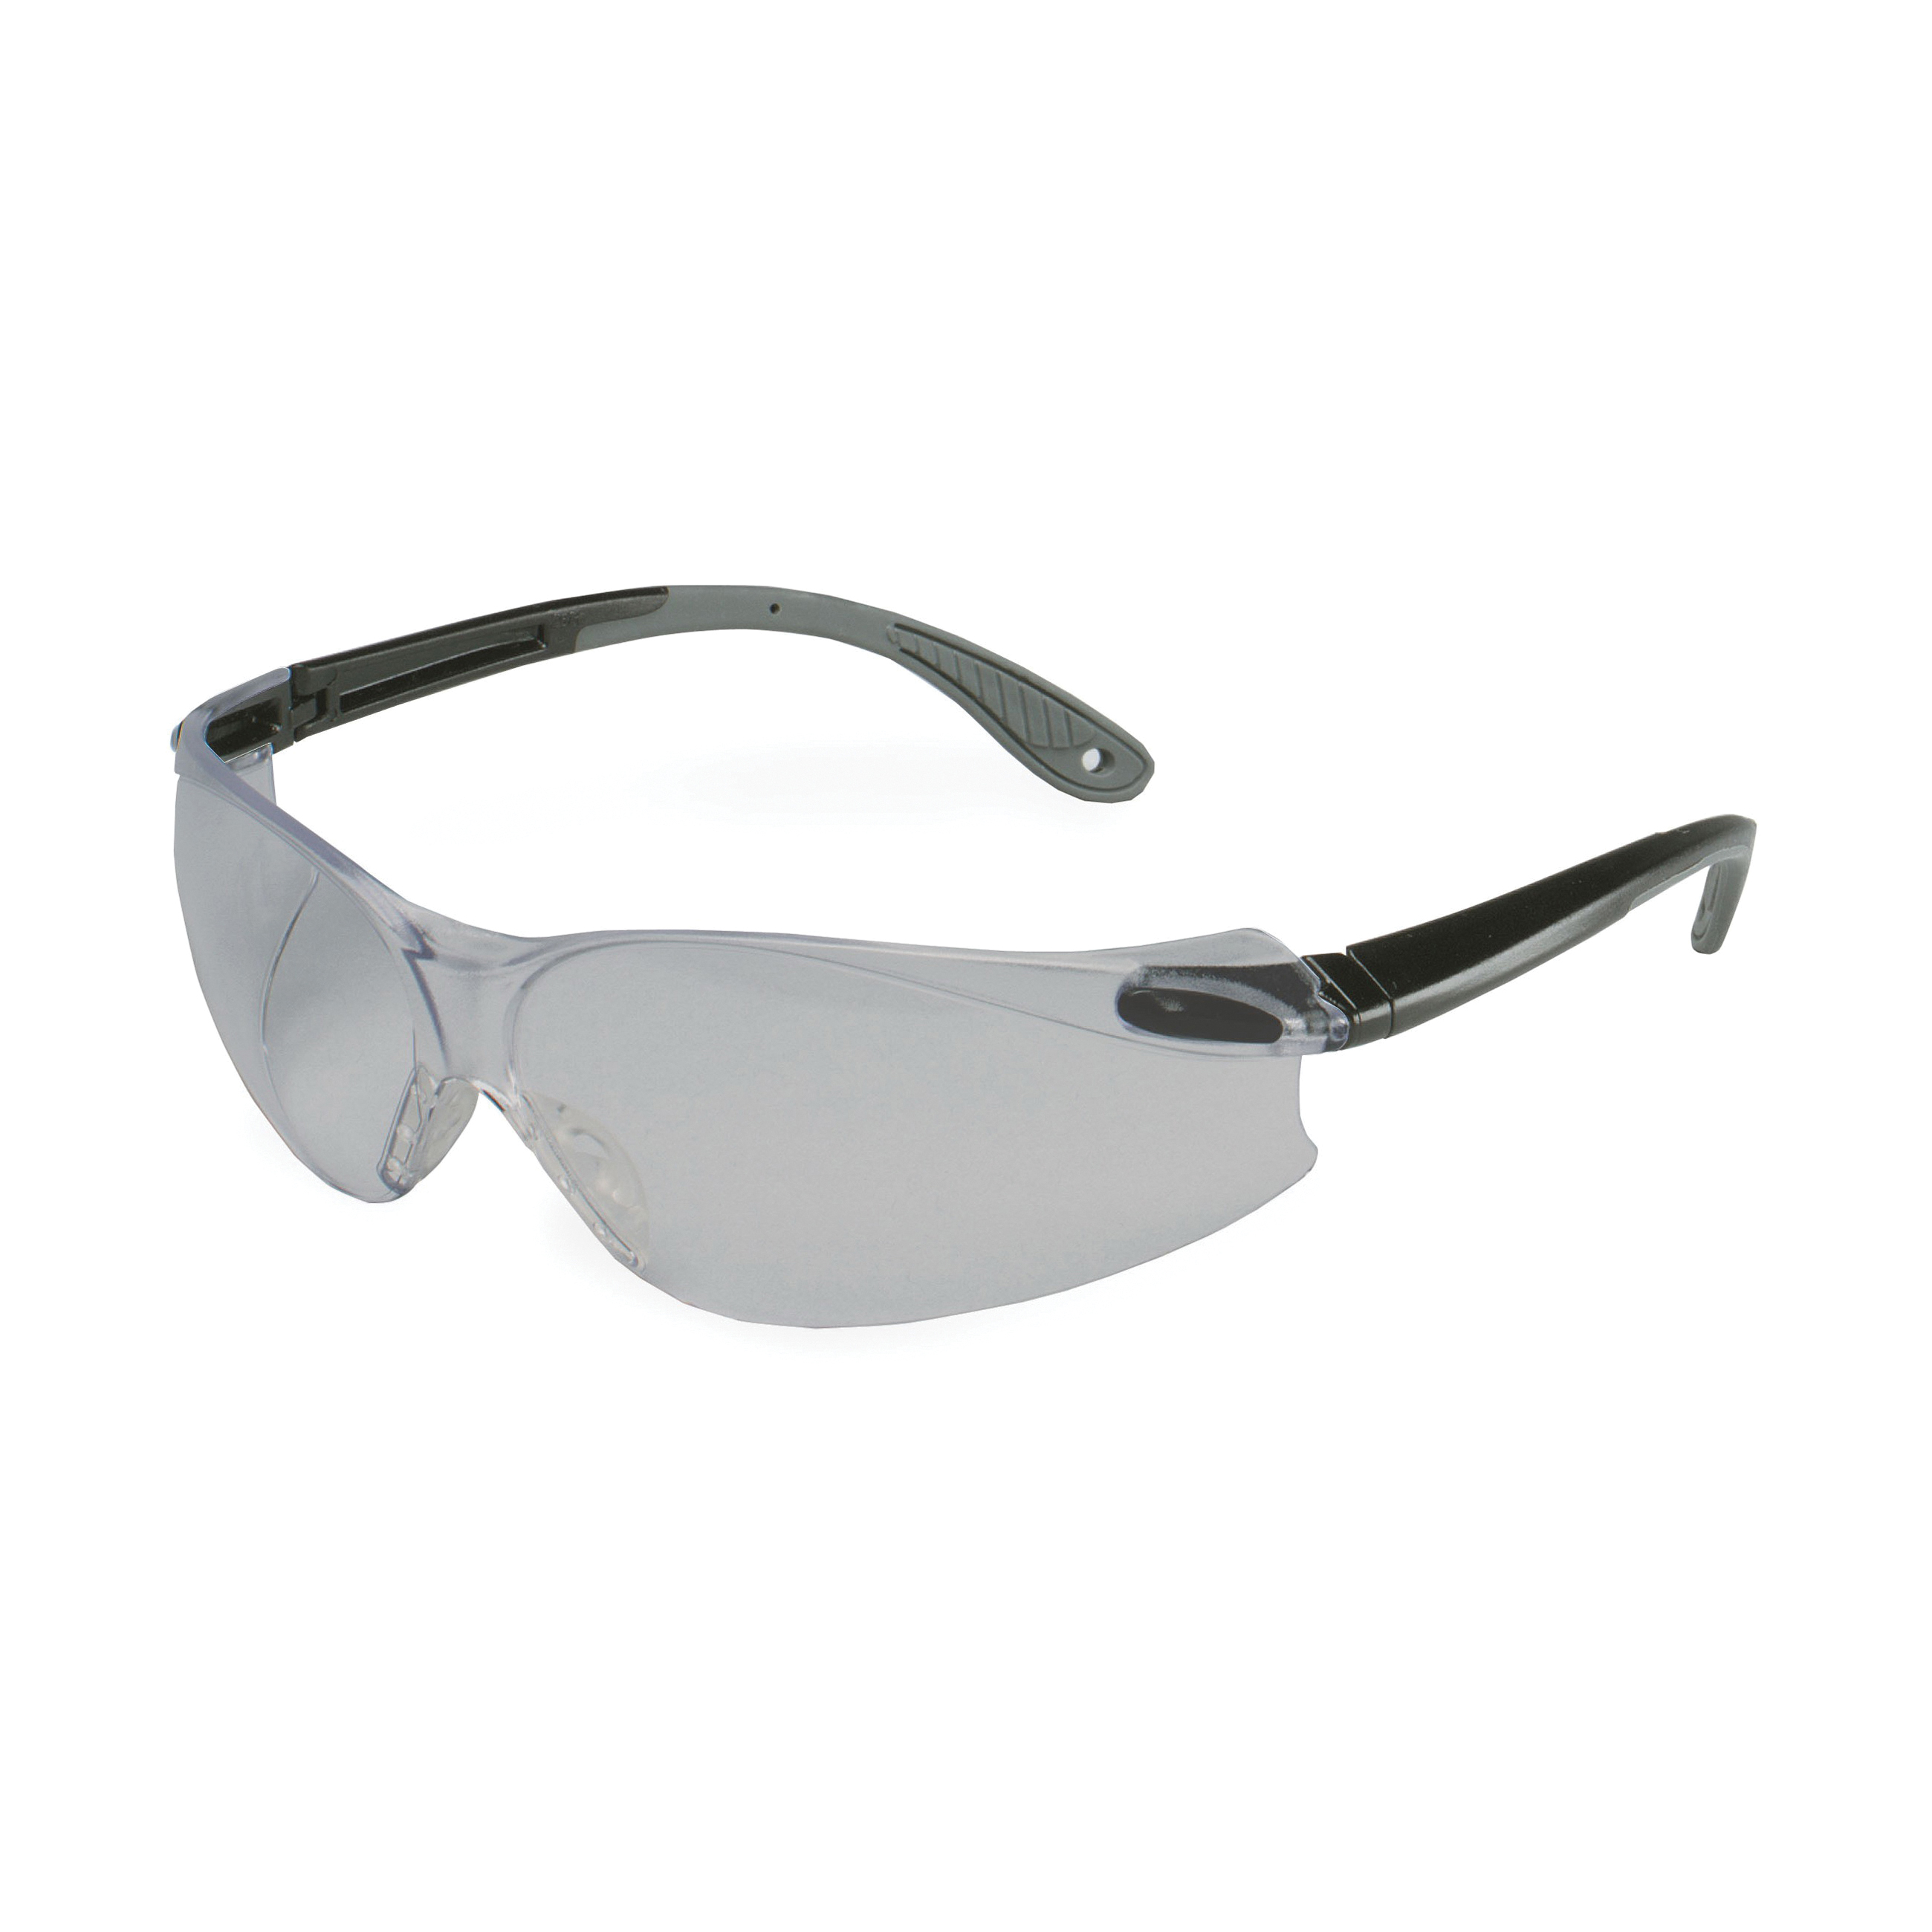 3M™ Virtua™ 078371-62037 11673-00000-20 V4 Economy Protective Eyewear, Anti-Fog Gray Lens, Frameless/Wraparound Black/Gray Polycarbonate Frame, Polycarbonate Lens, Specifications Met: ANSI Z87.1-2015